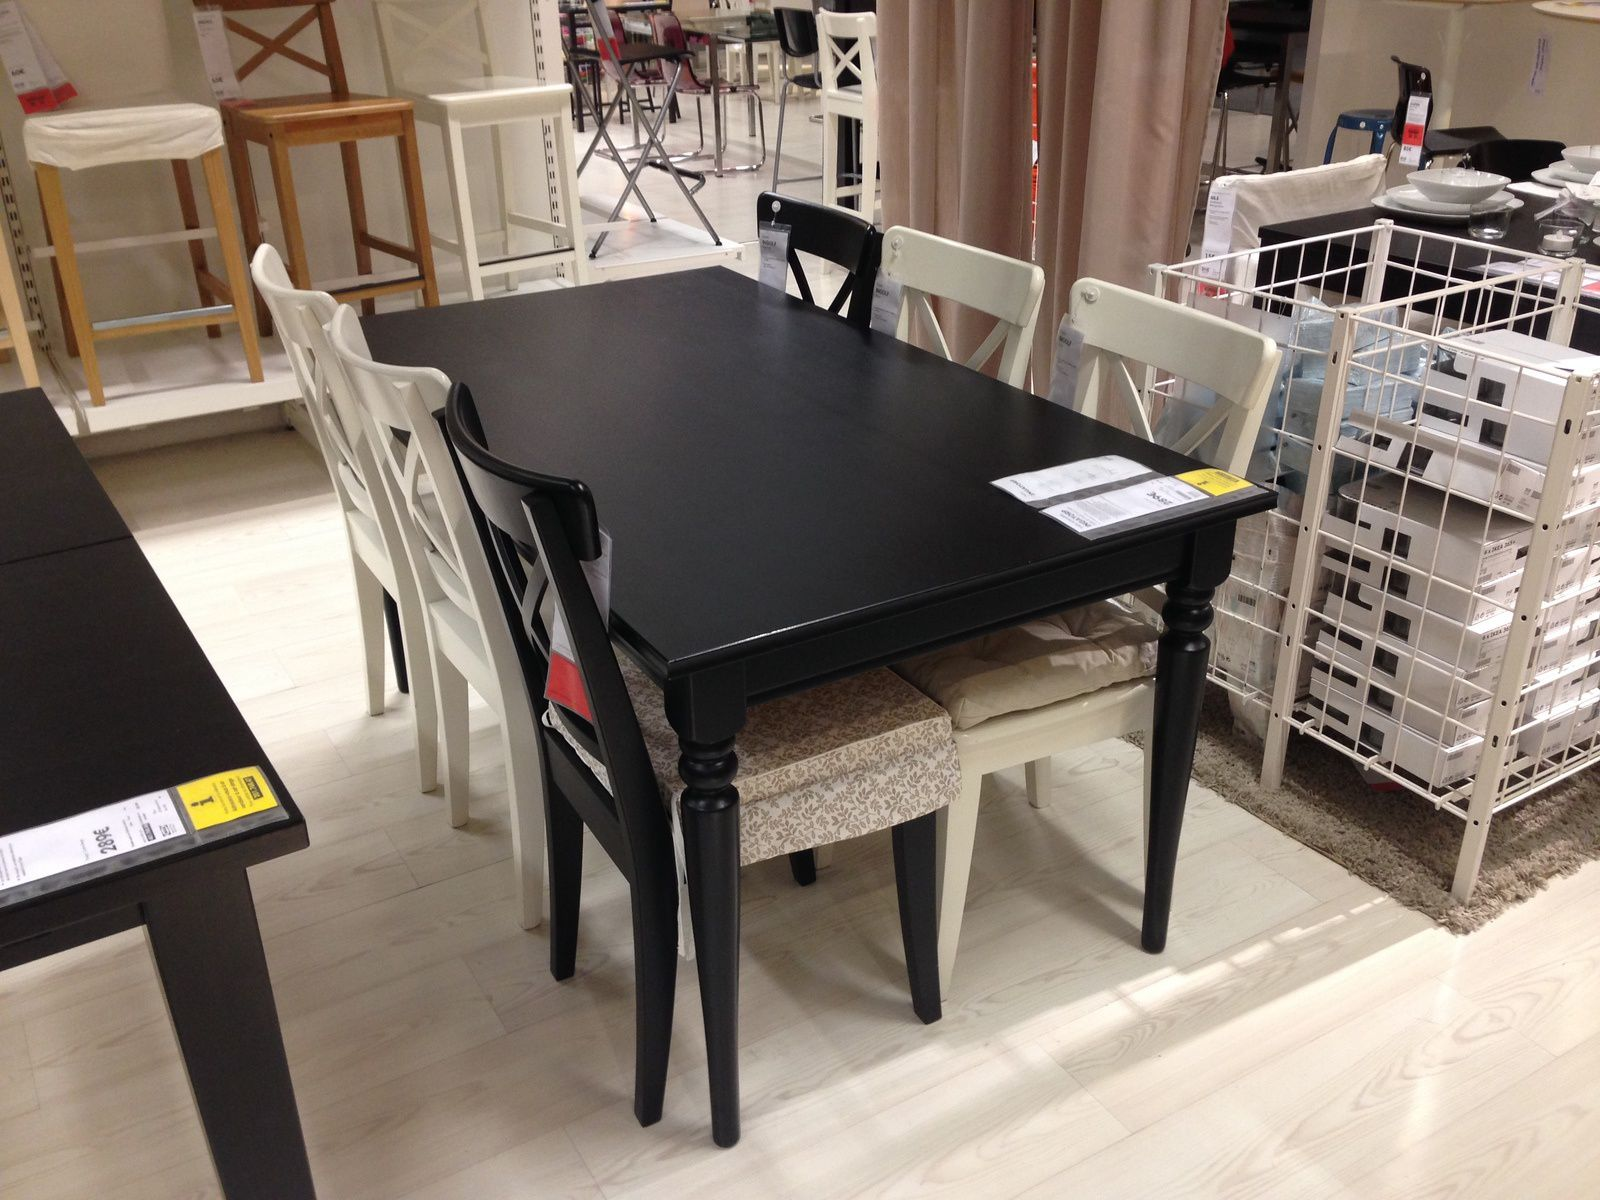 Frais De Ikea Cuisine Table Conception Id Es De Table